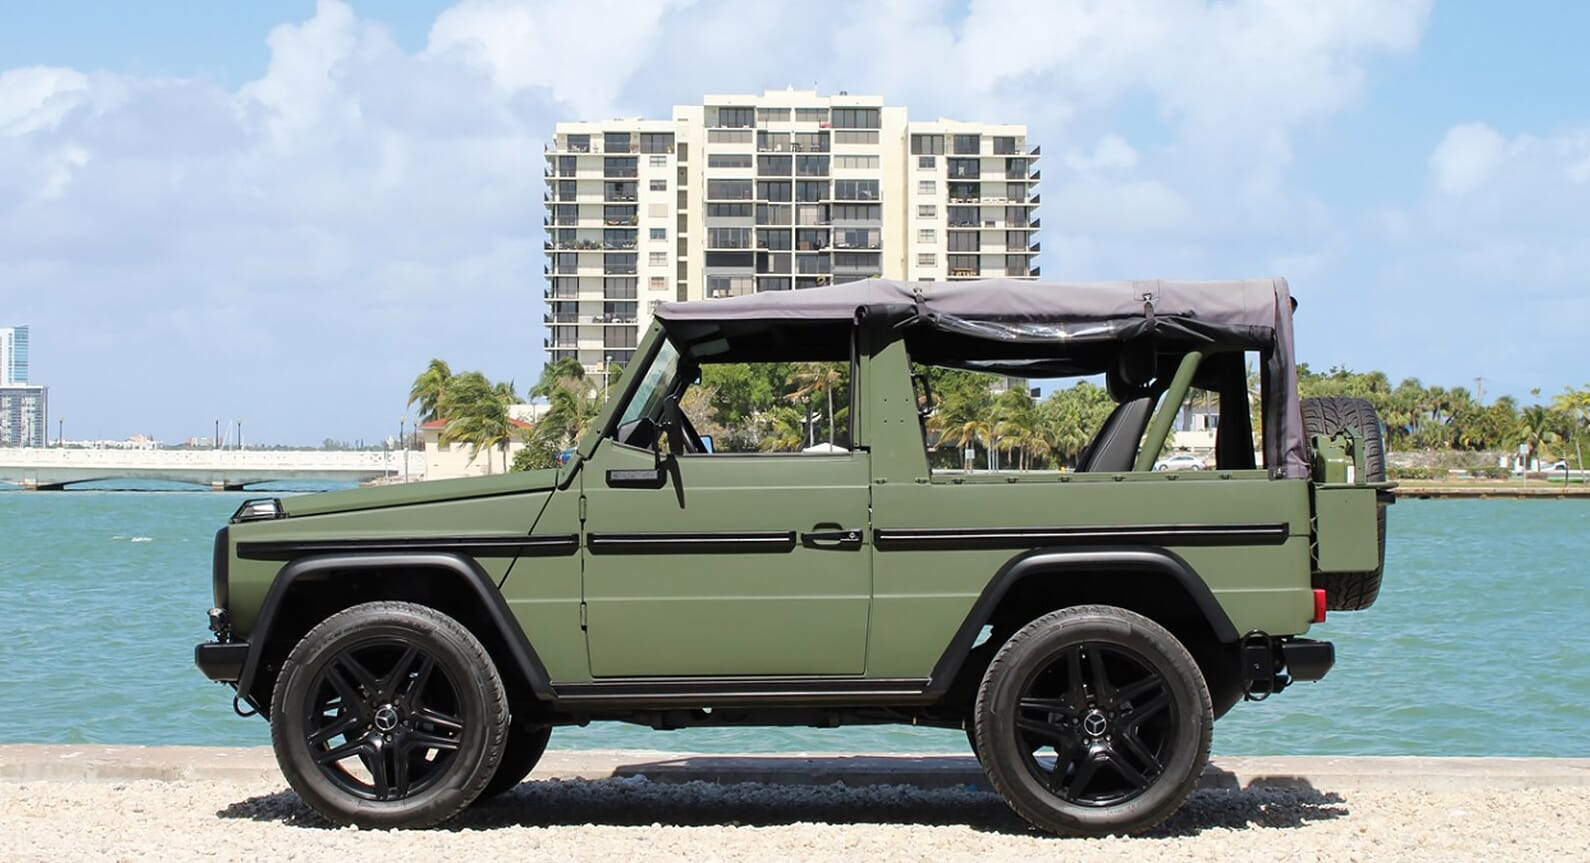 Three Reasons Why This G-Wagen Should Be Your Next Off-Roader